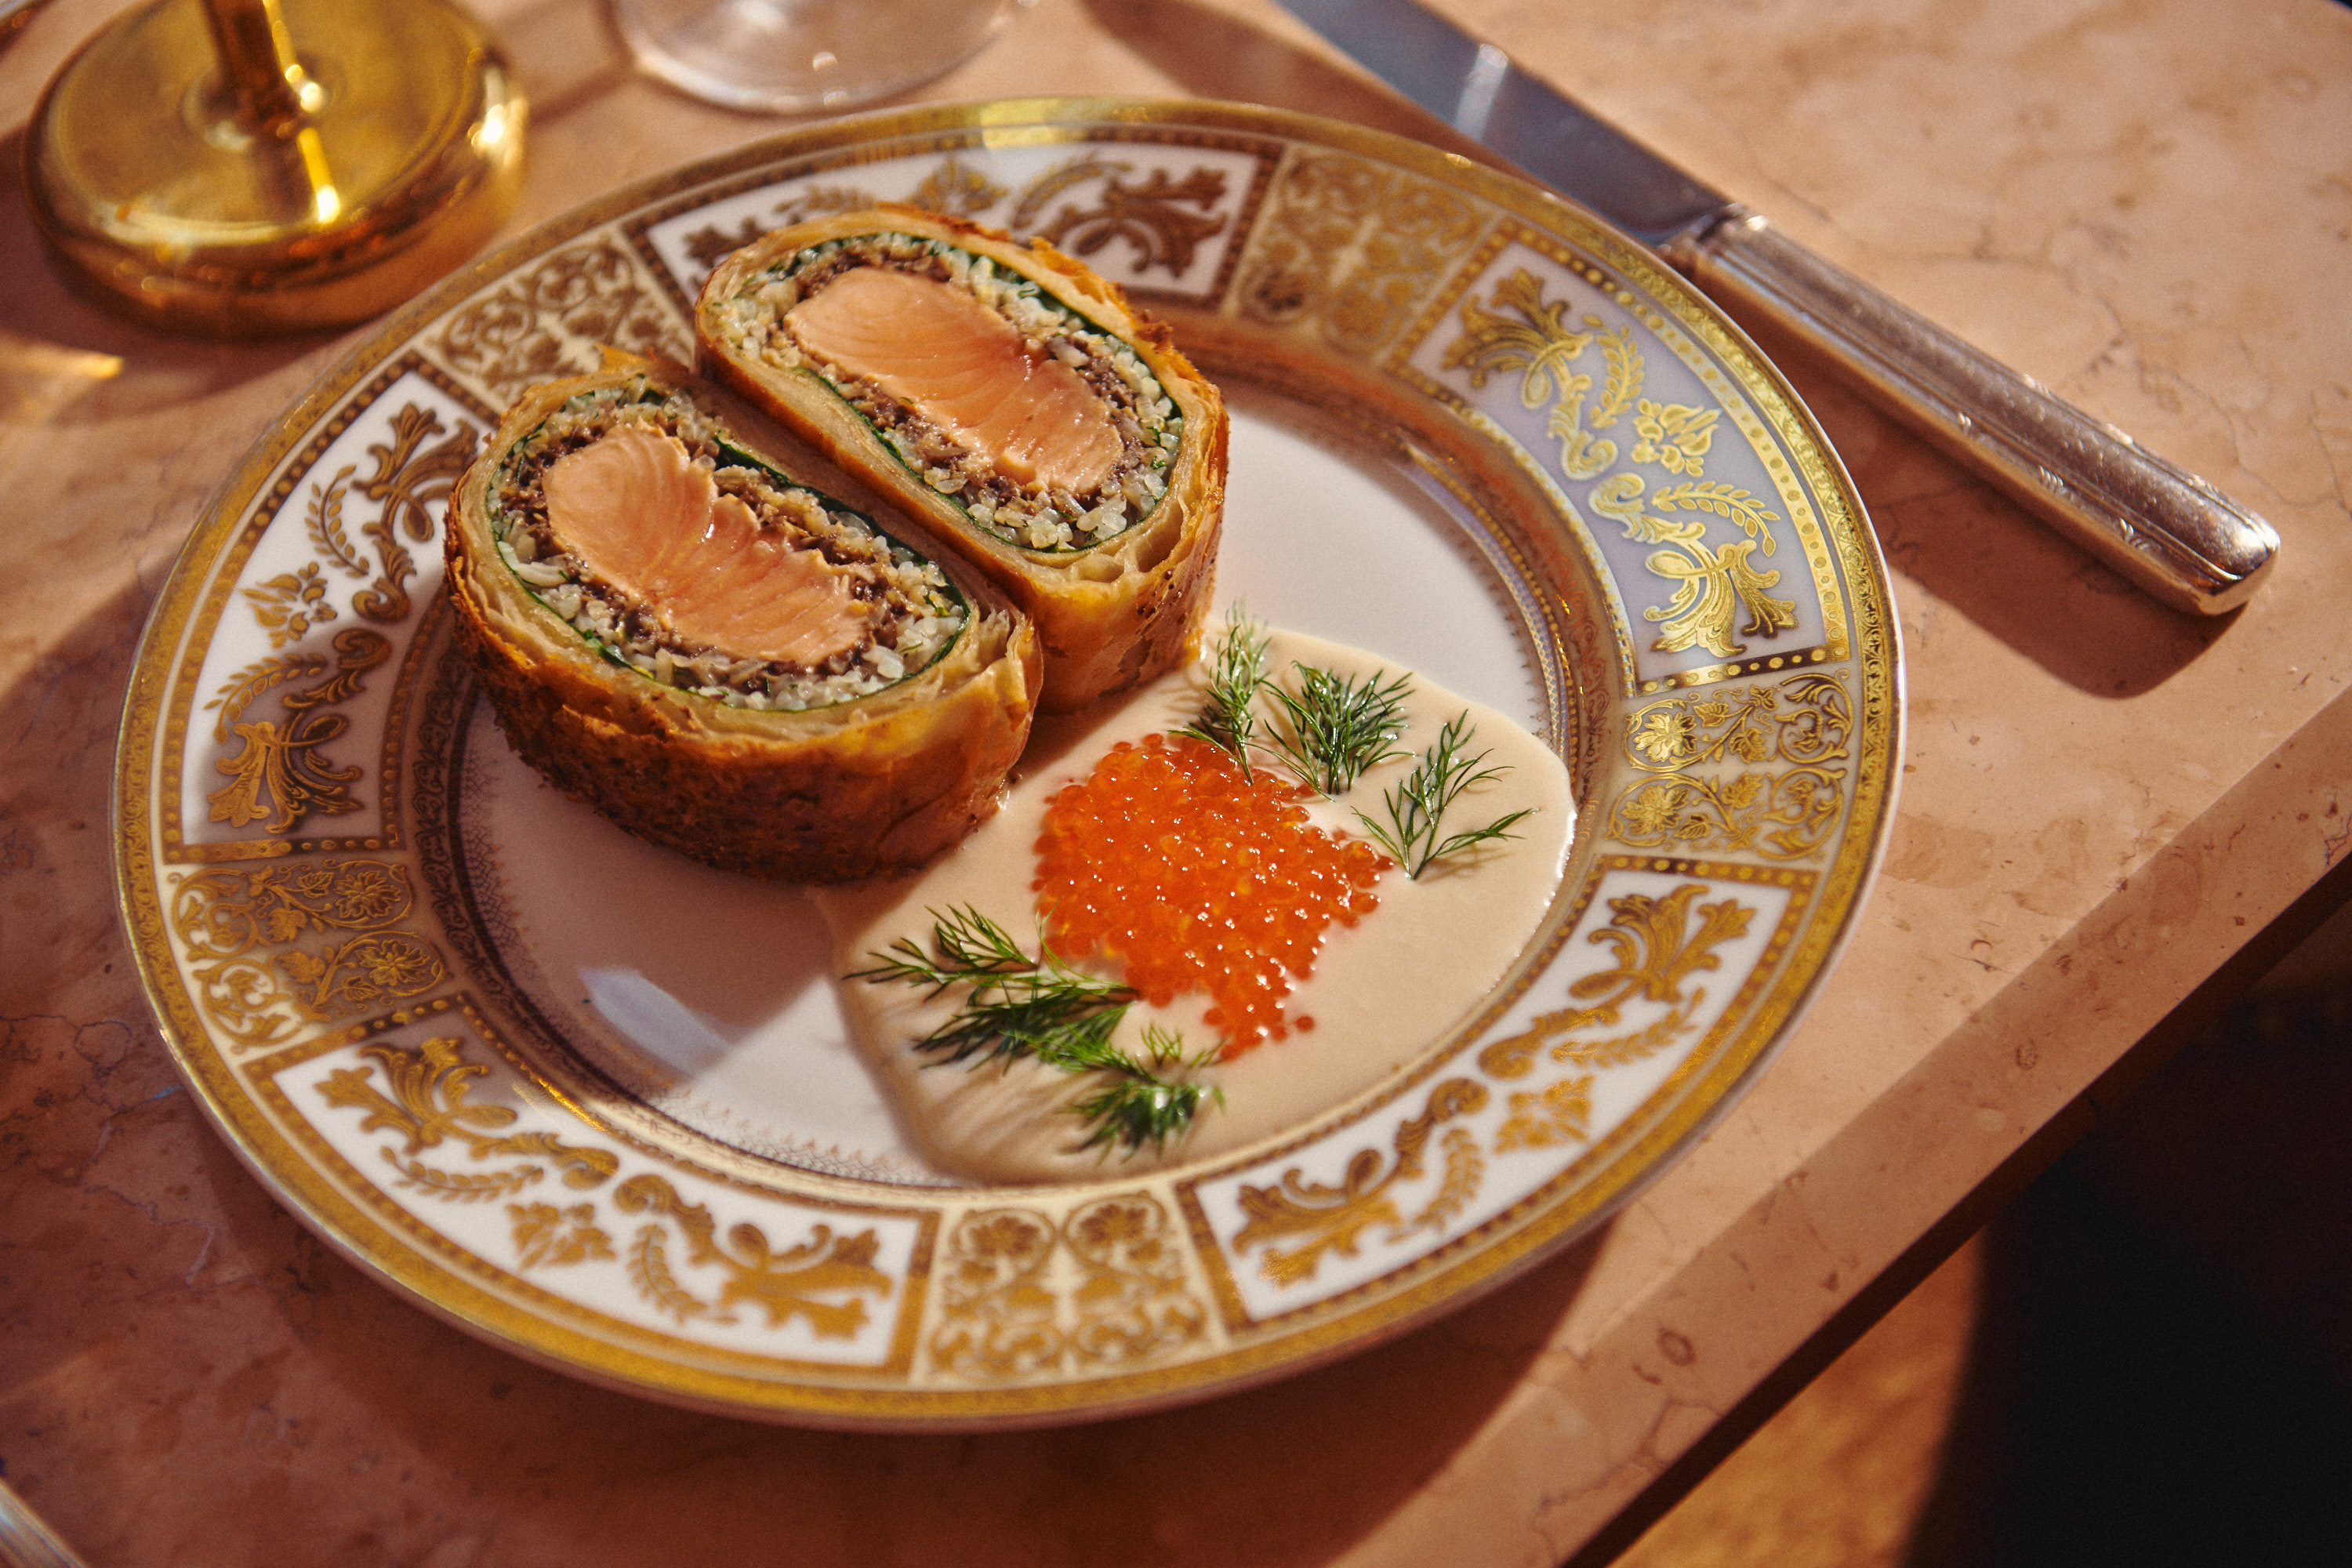 An ornate, gold-lined plate holds a Russian fish pie, with a creamy sauce next to it.